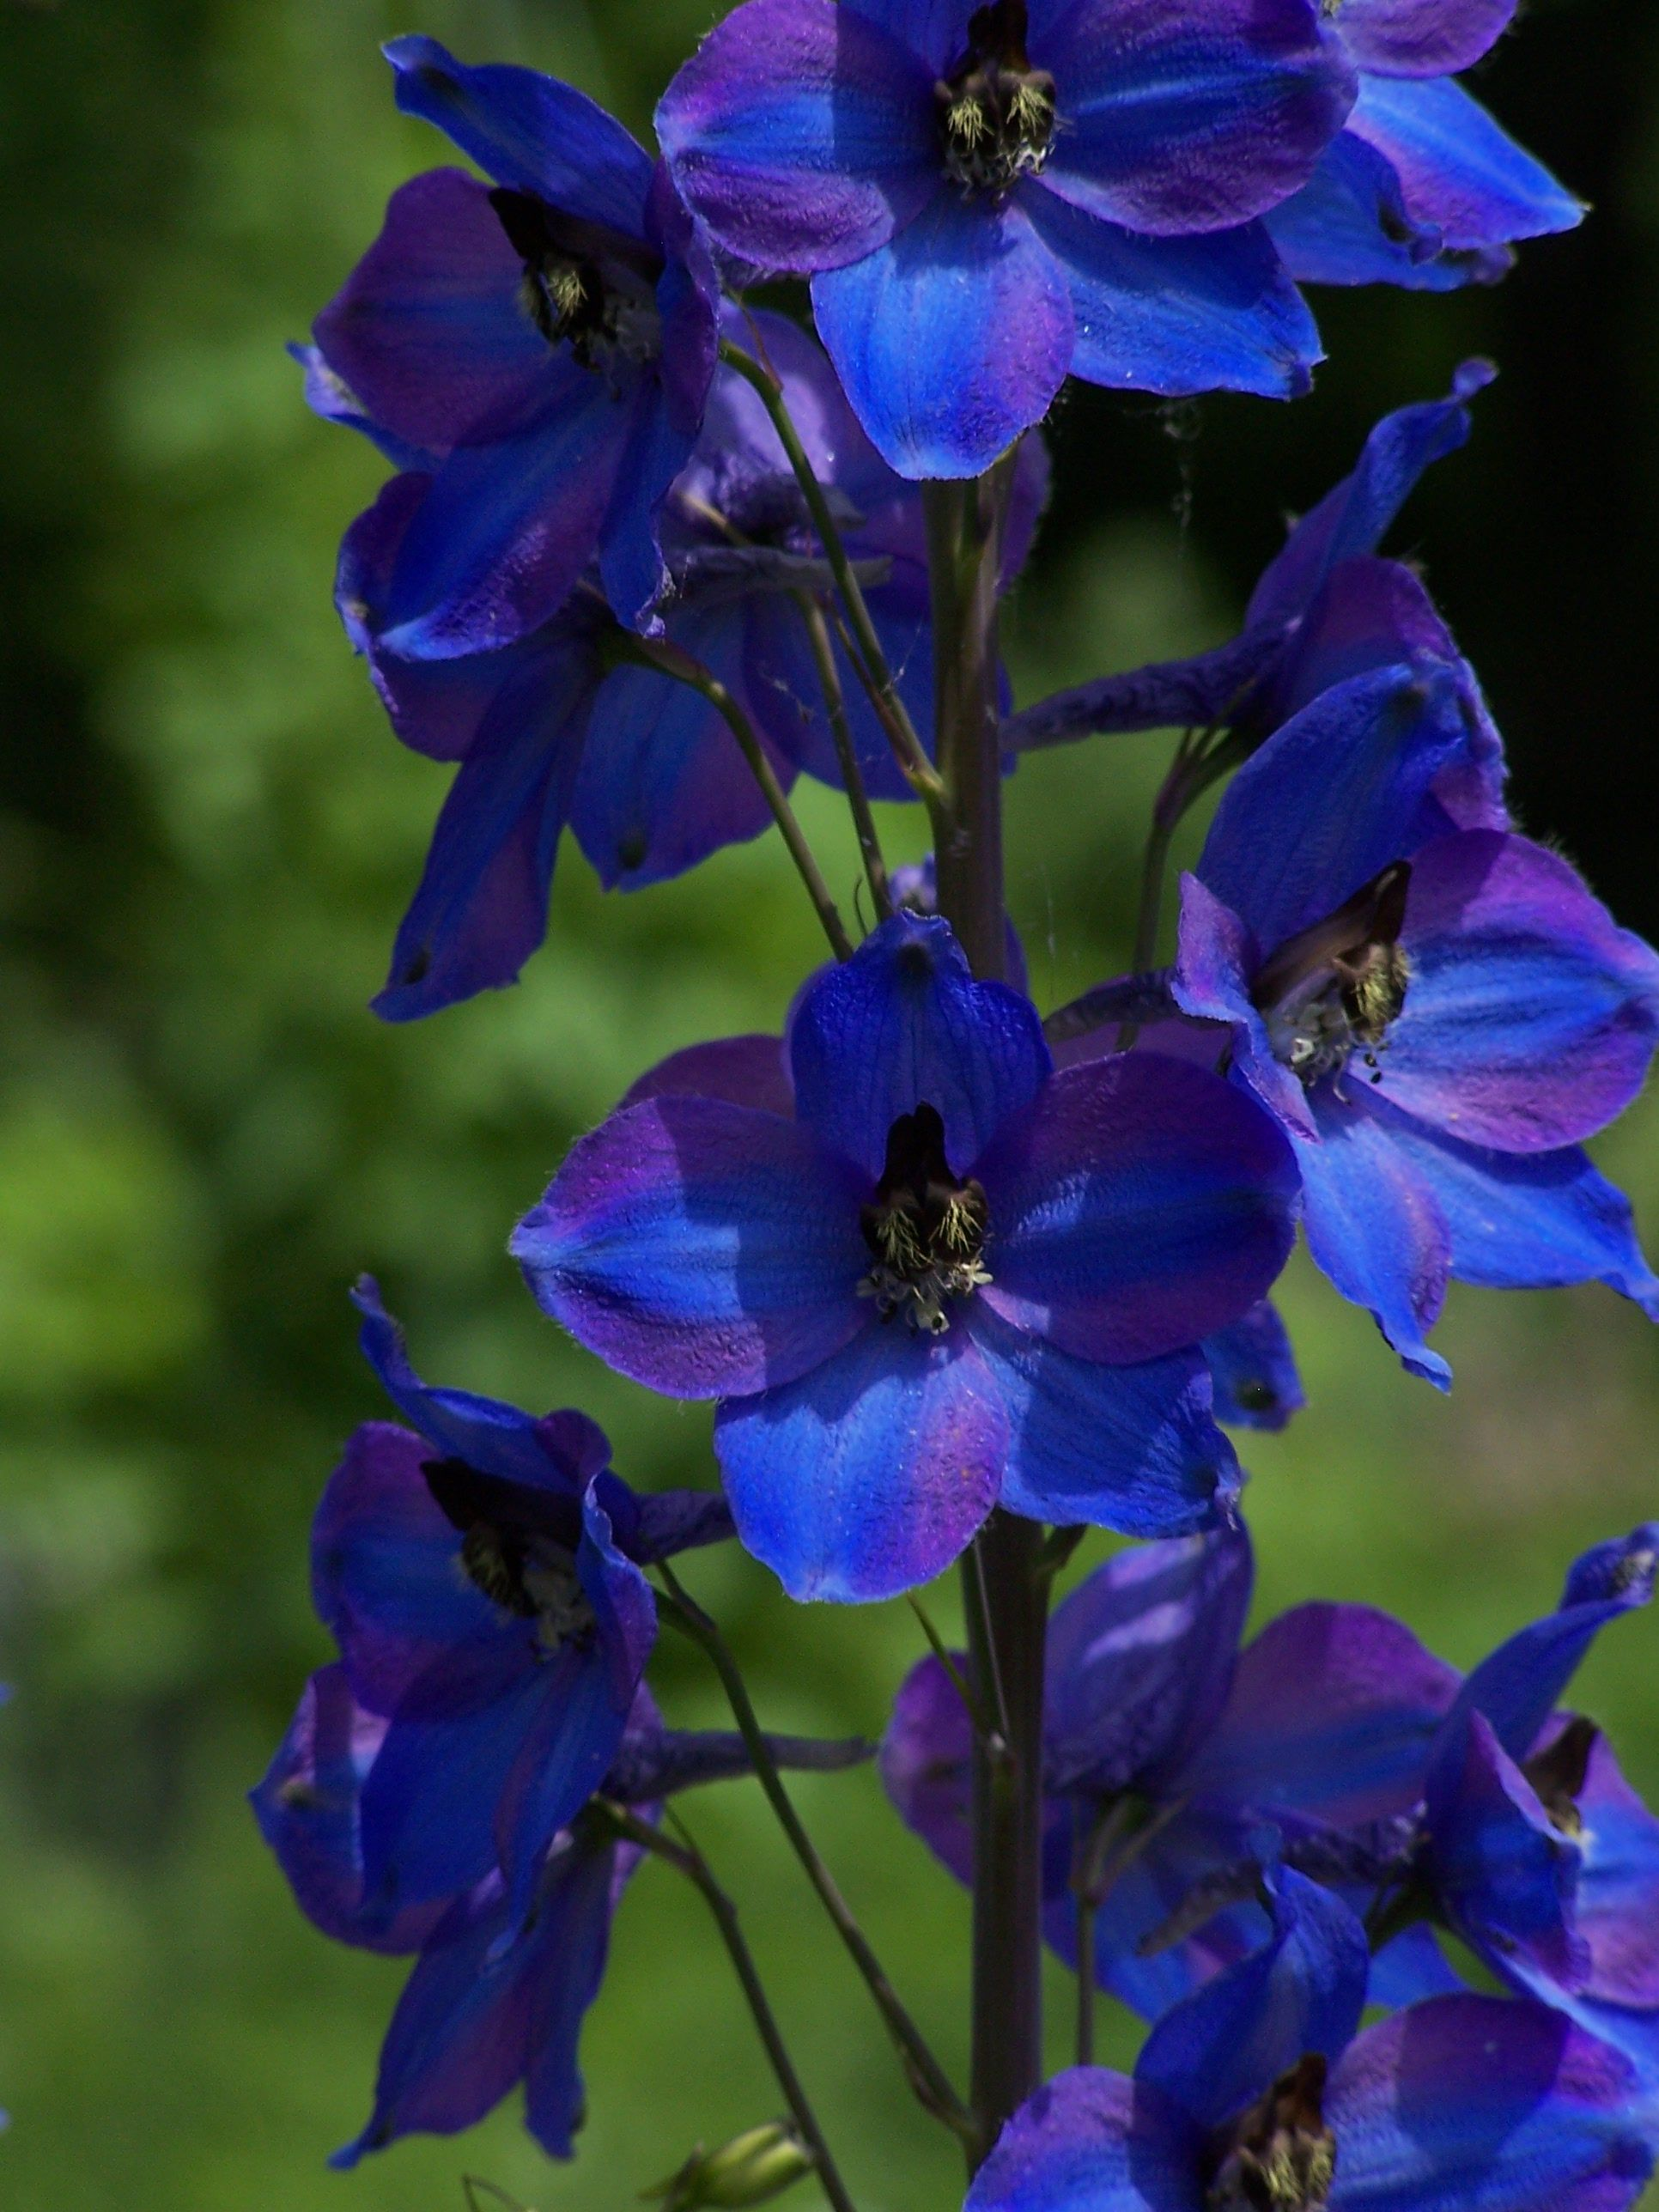 Delphinium Delphinium is a stately, elegant perennial that is a standard in English cottage gardens. Mounds of dark green, glossy foliage are adorned with huge spikes of showy, spurred flowers in e...